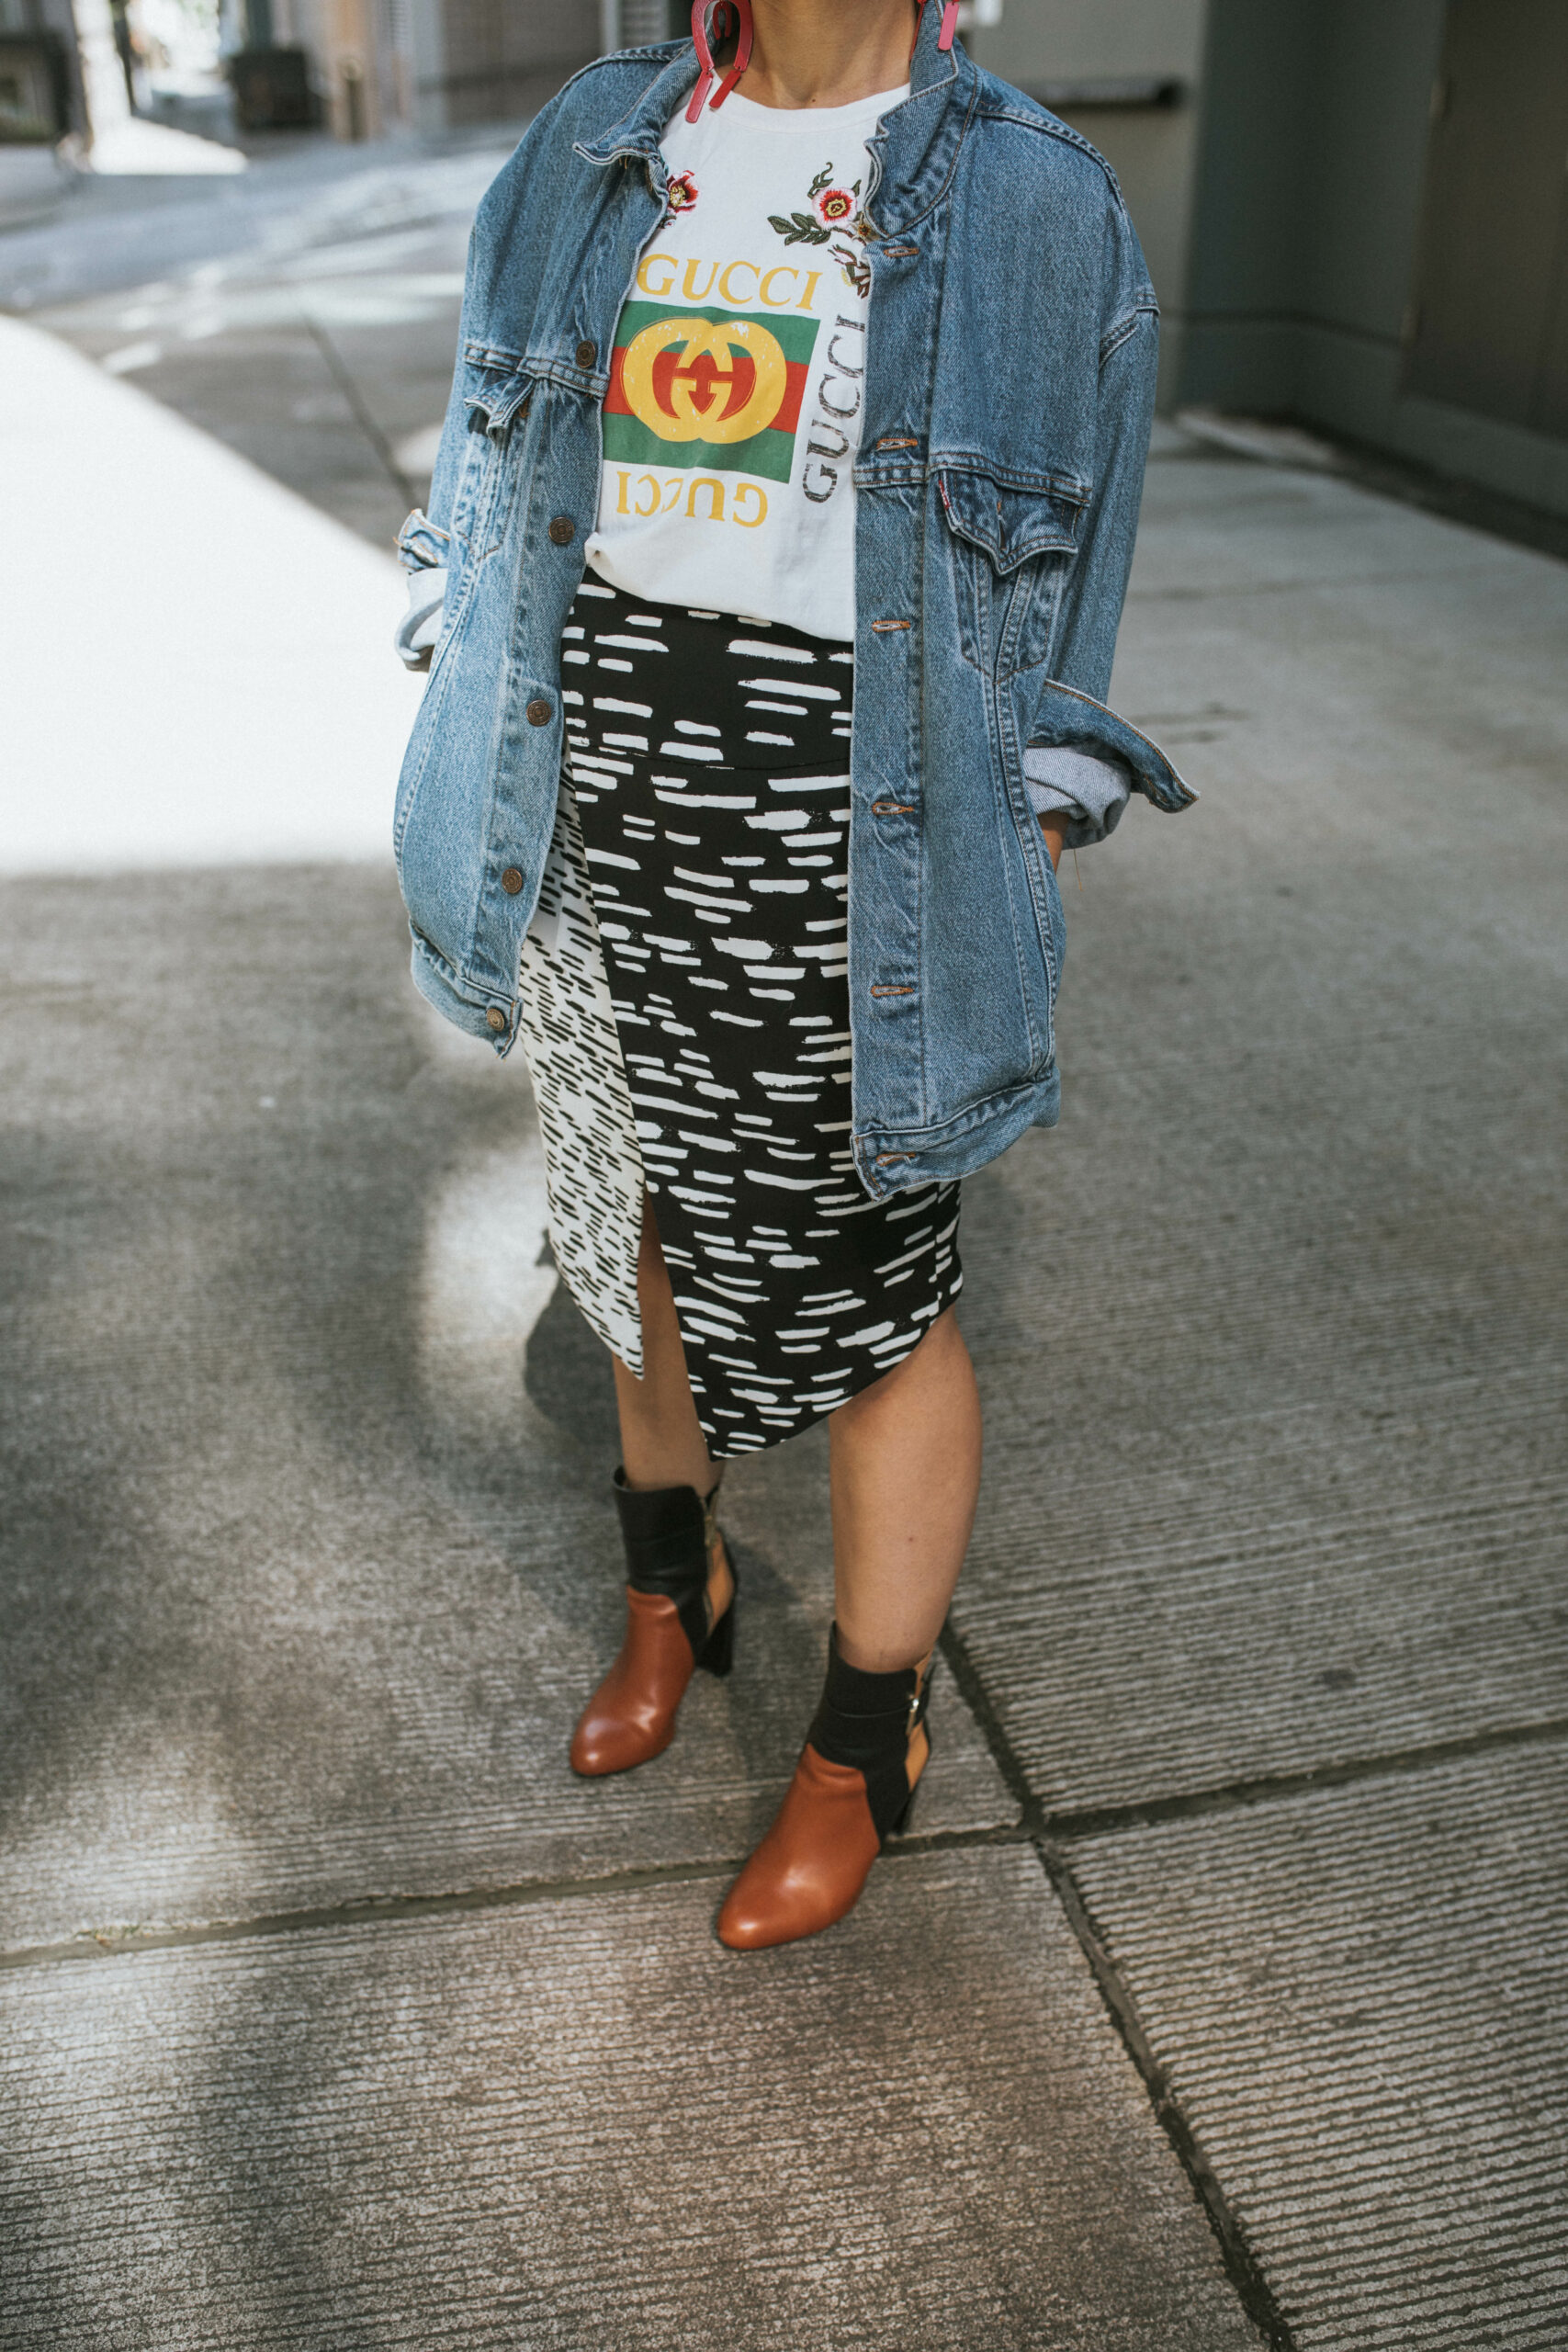 How to Wear Ankle Boots in Summertime - BloggerNotBillionaire.com